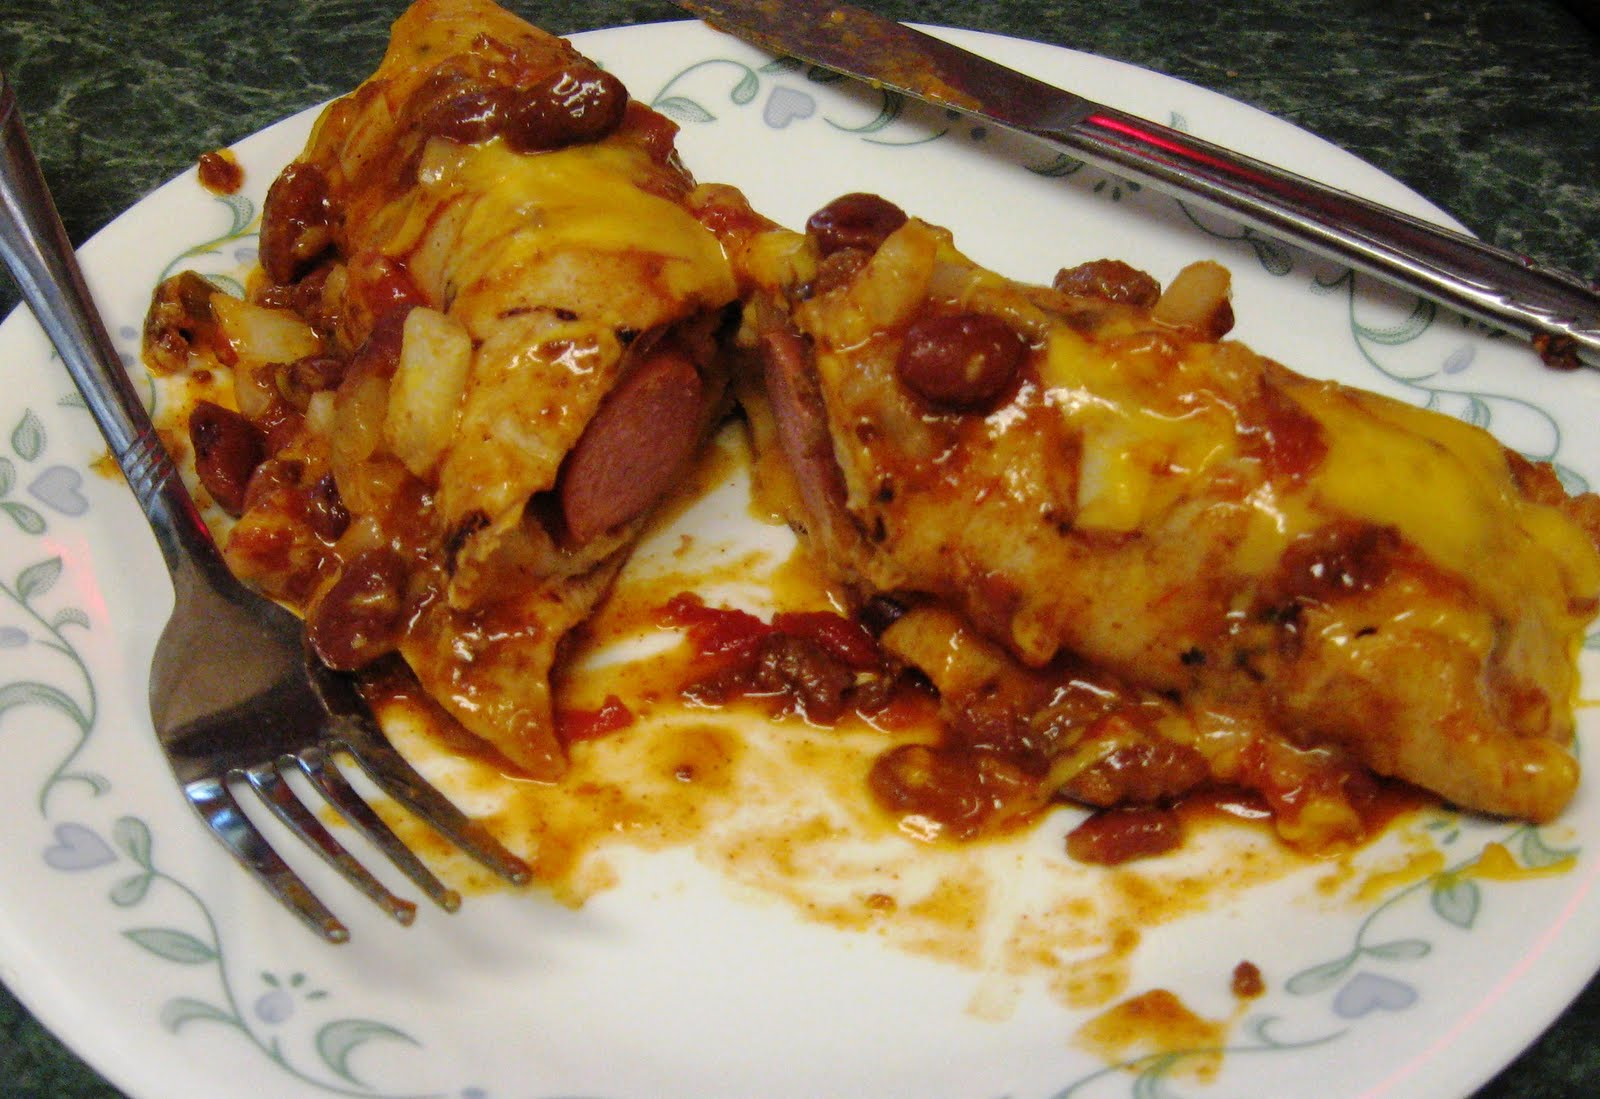 ... recipes later. But for now, I give you this. Chili Dog Casserole